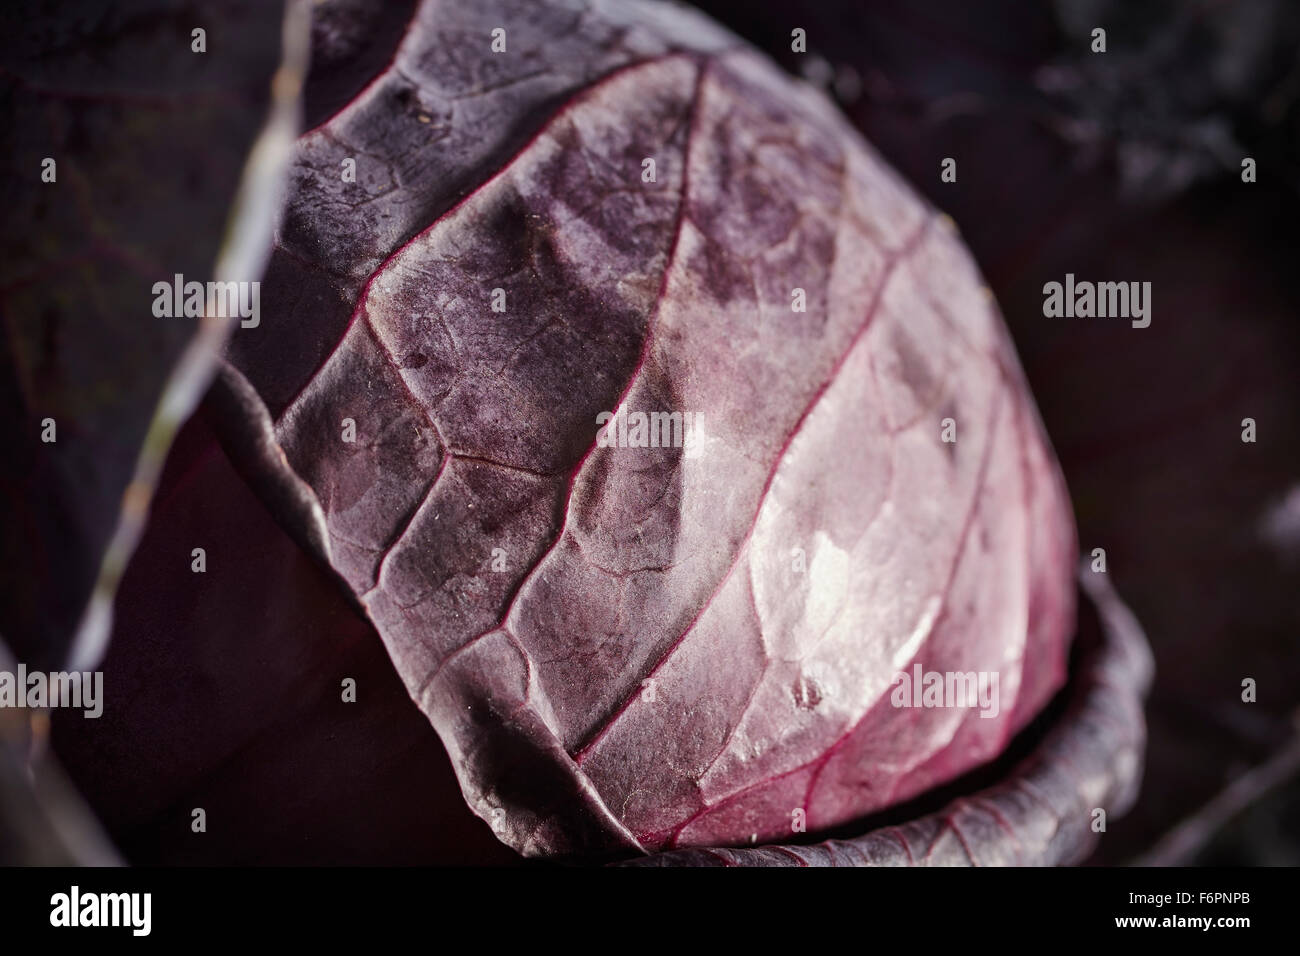 a whole head of red cabbage - Stock Image